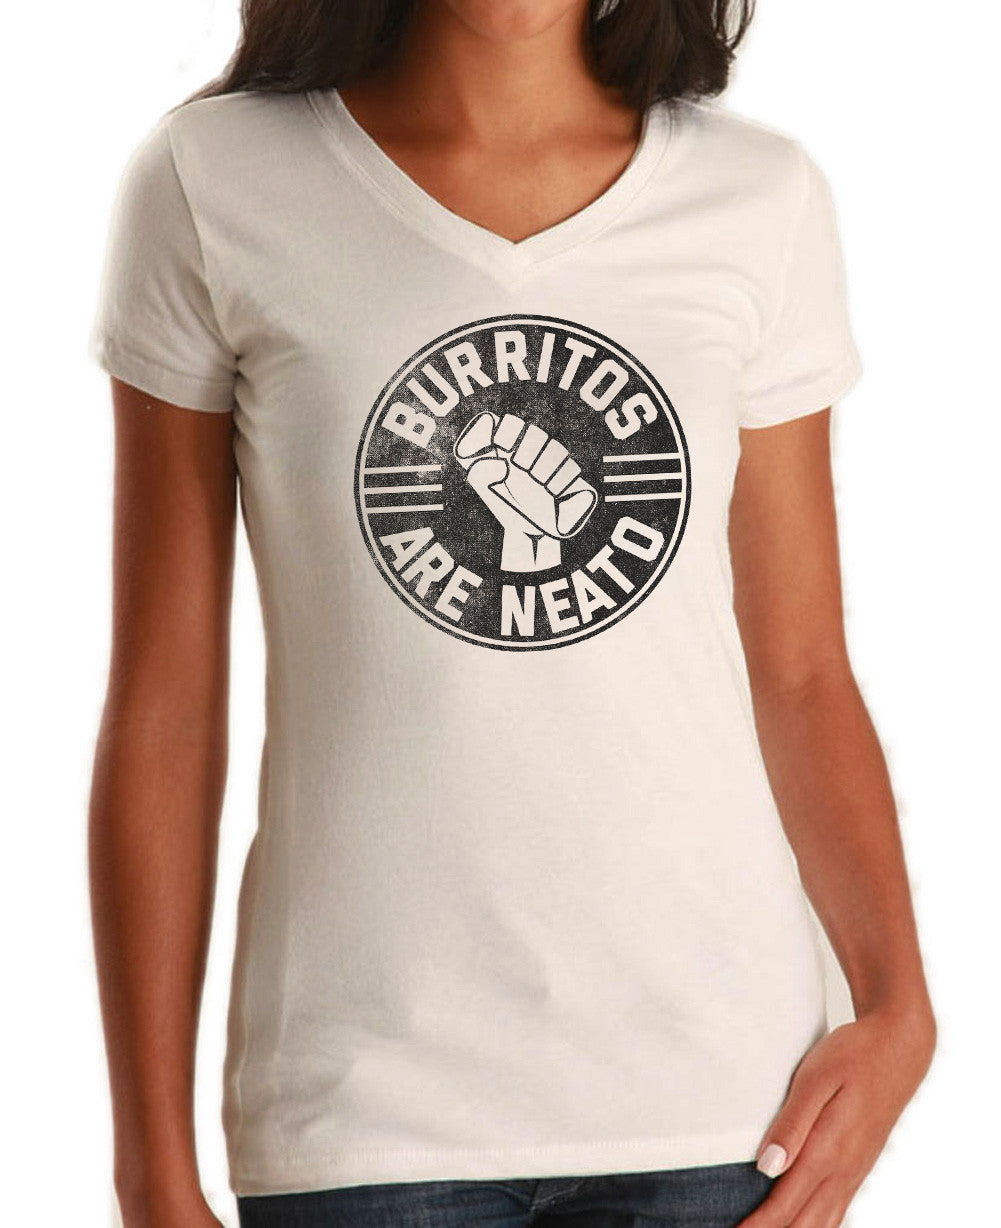 Women's Burritos Are Neato Vneck T-Shirt - Funny Hipster Foodie